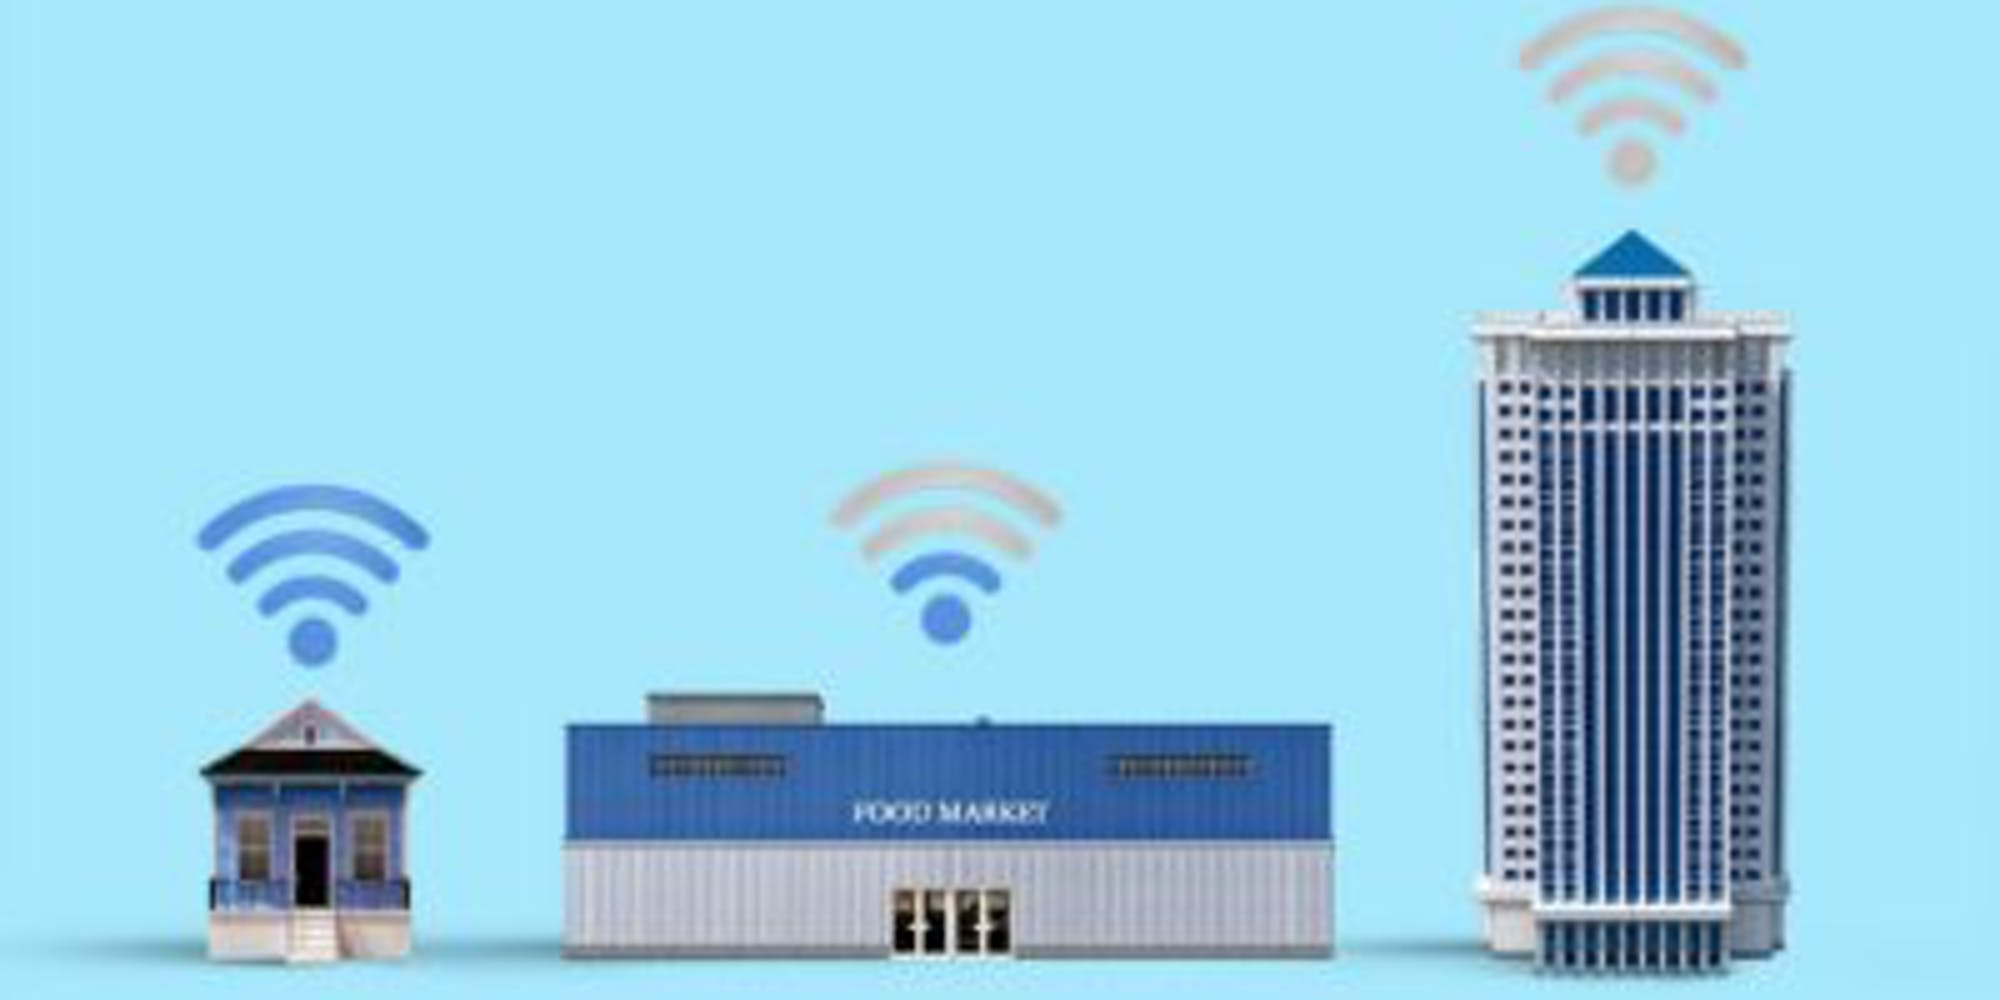 Diagram showing wifi and buildings